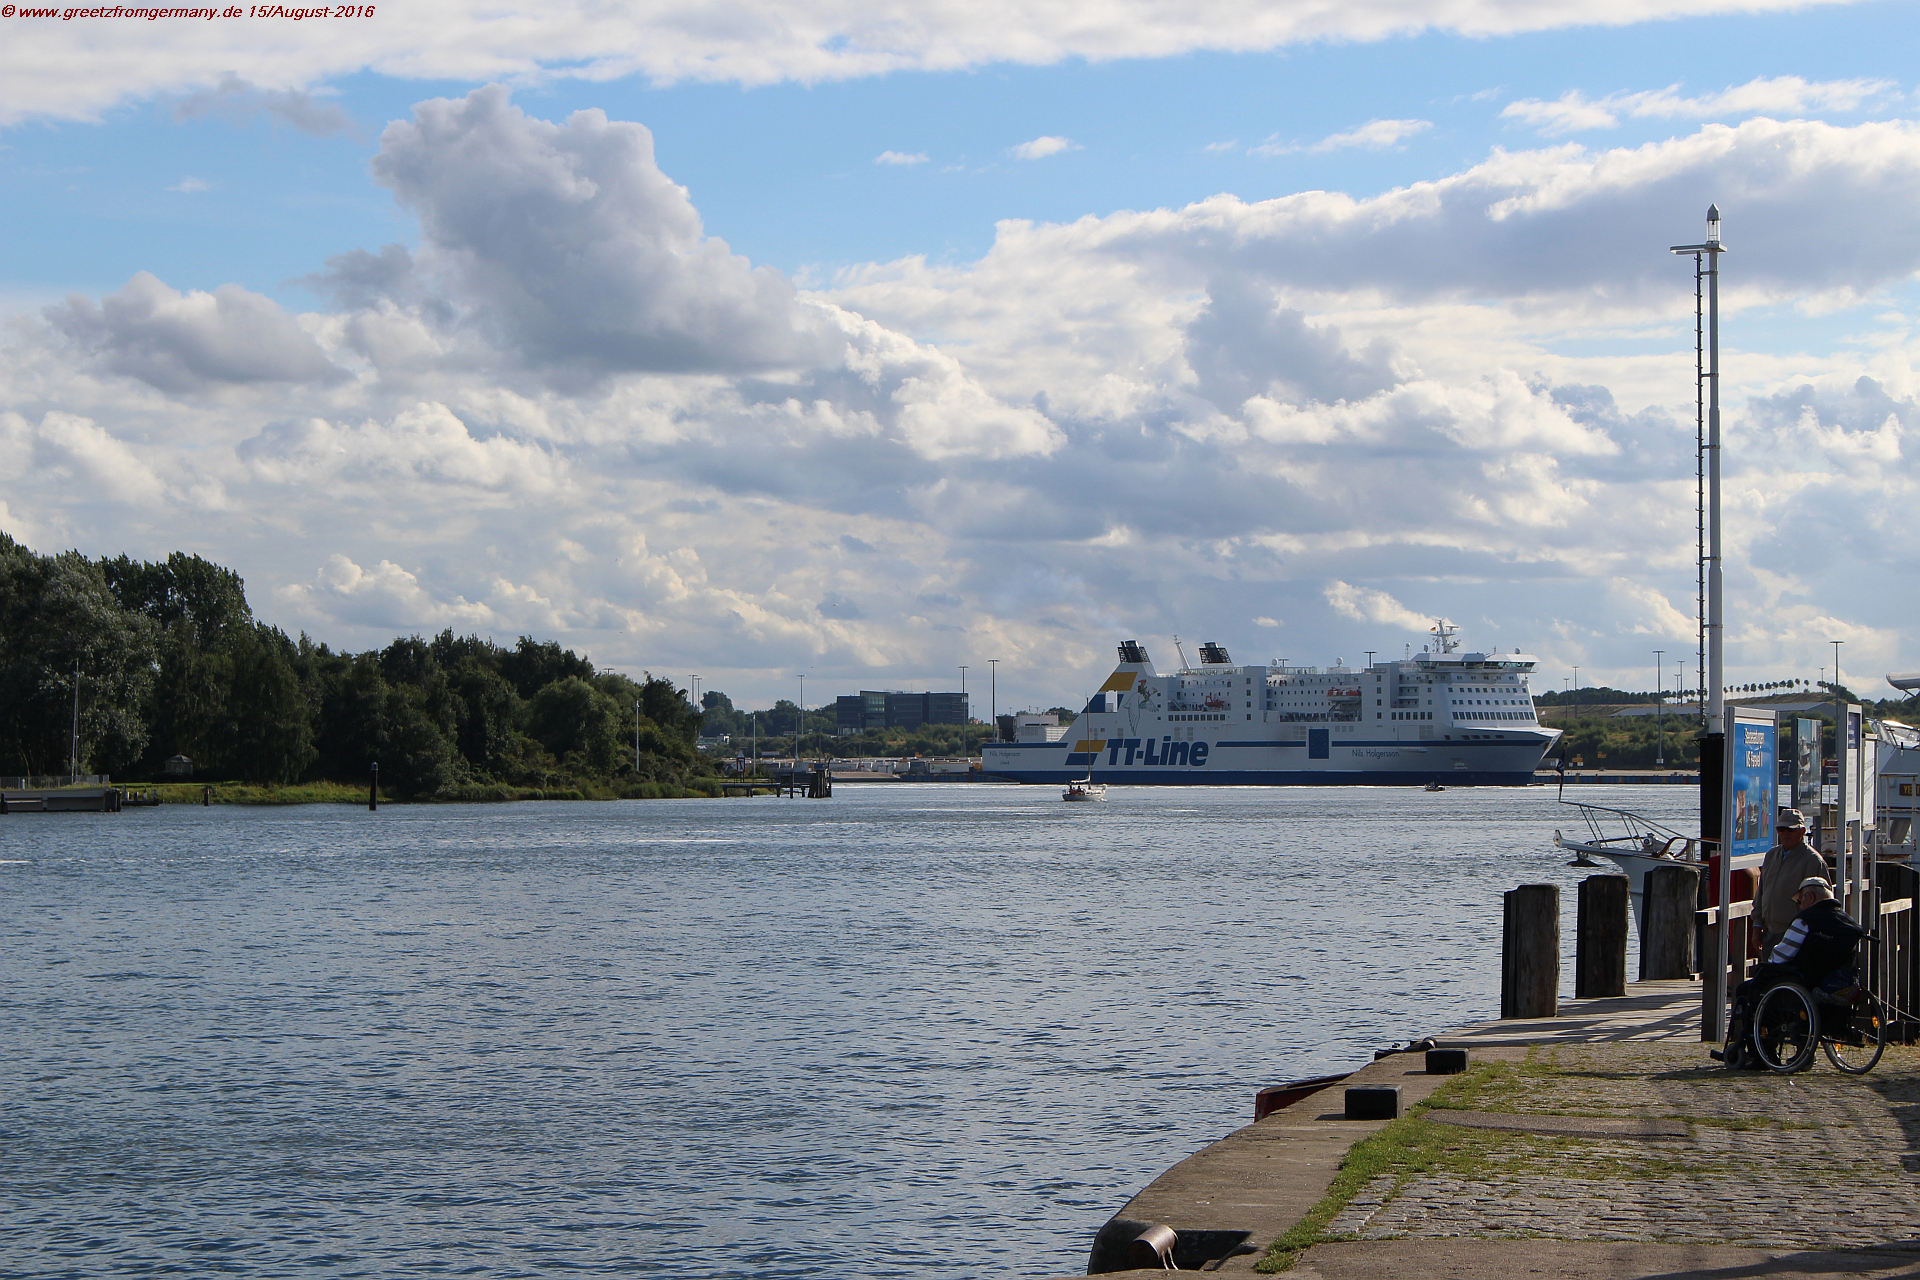 In Travemünde, big and small meet: River Trave meets the Baltic Sea, and the small boats that accompanied the blogger along the Trave canal better get out of the way of huge cruise ships.